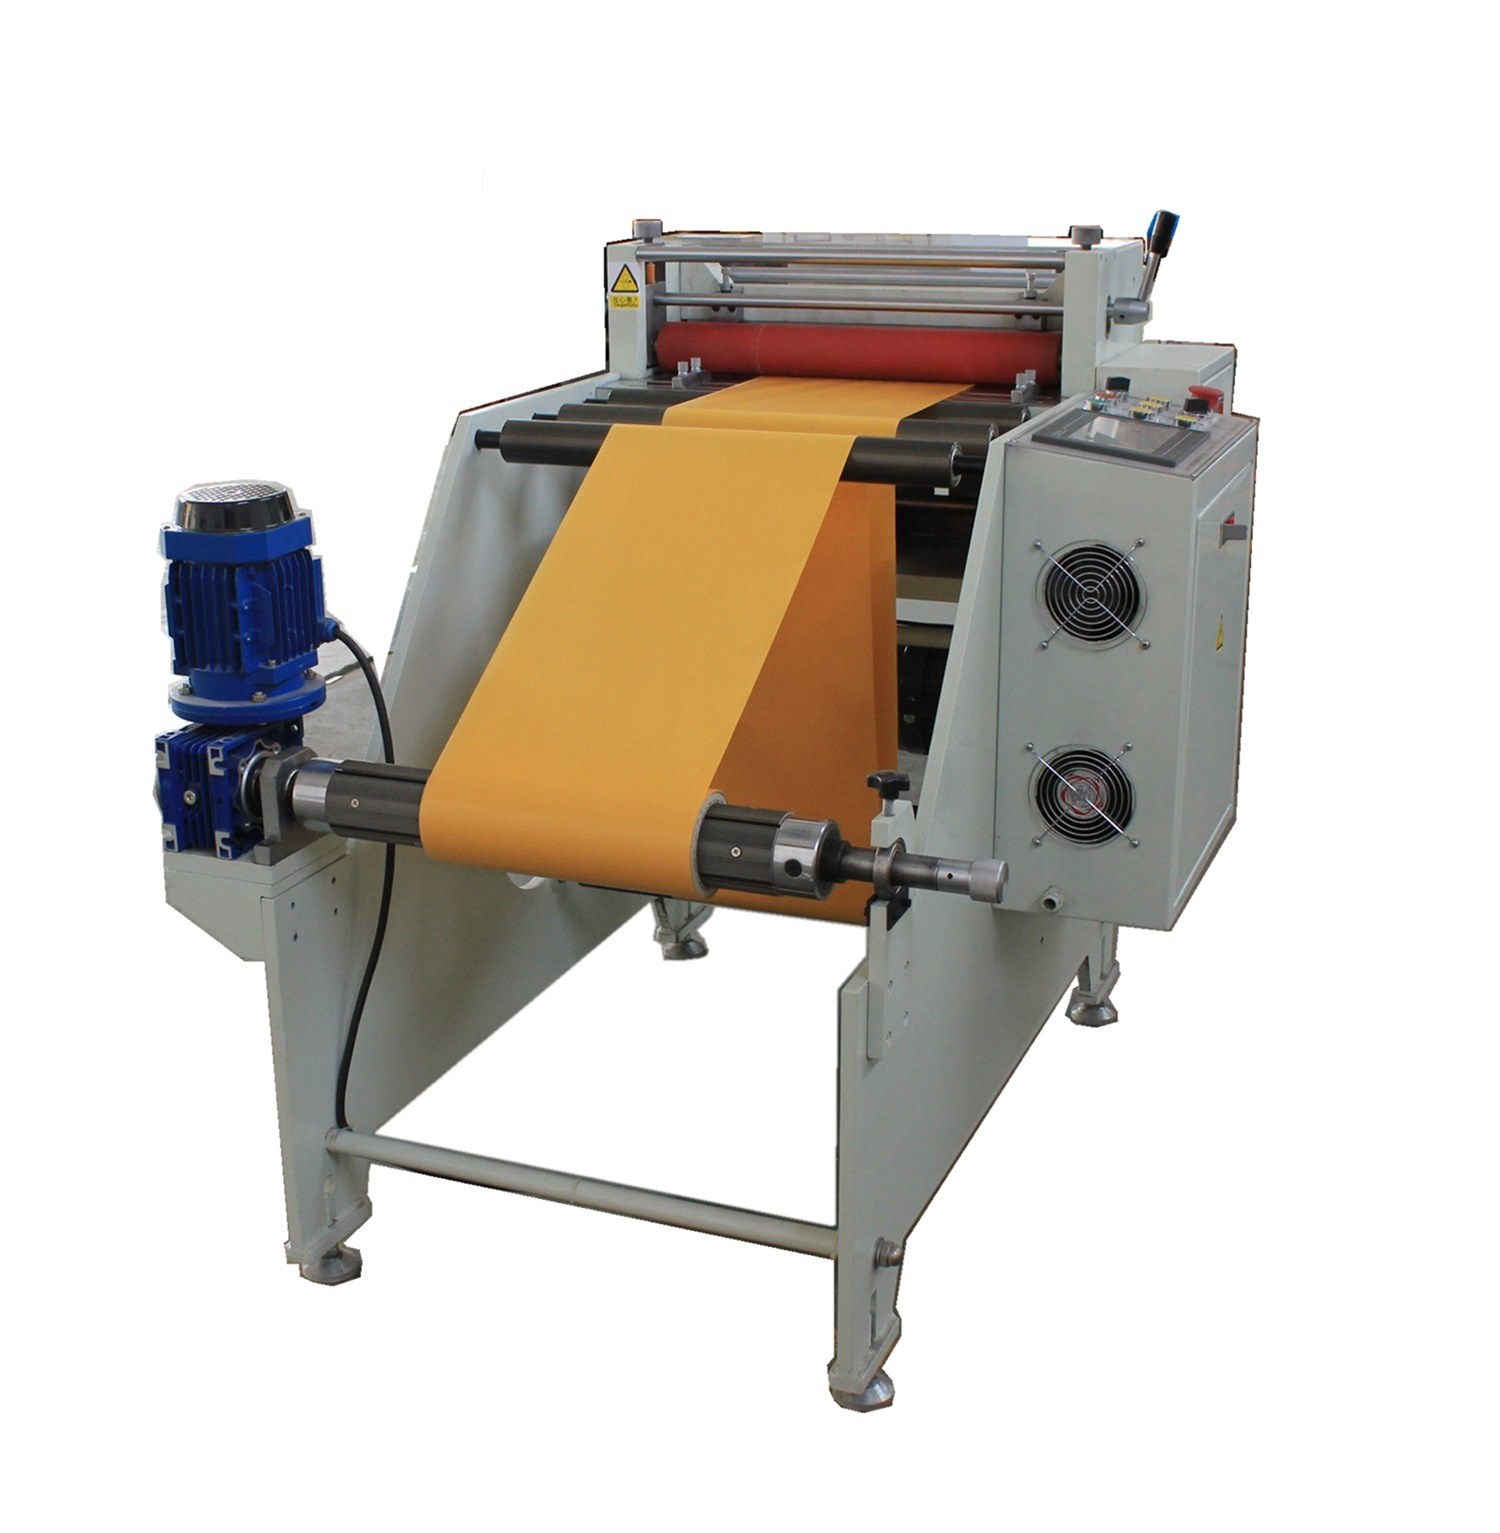 High-Precision Computer Control Sheet Cutter